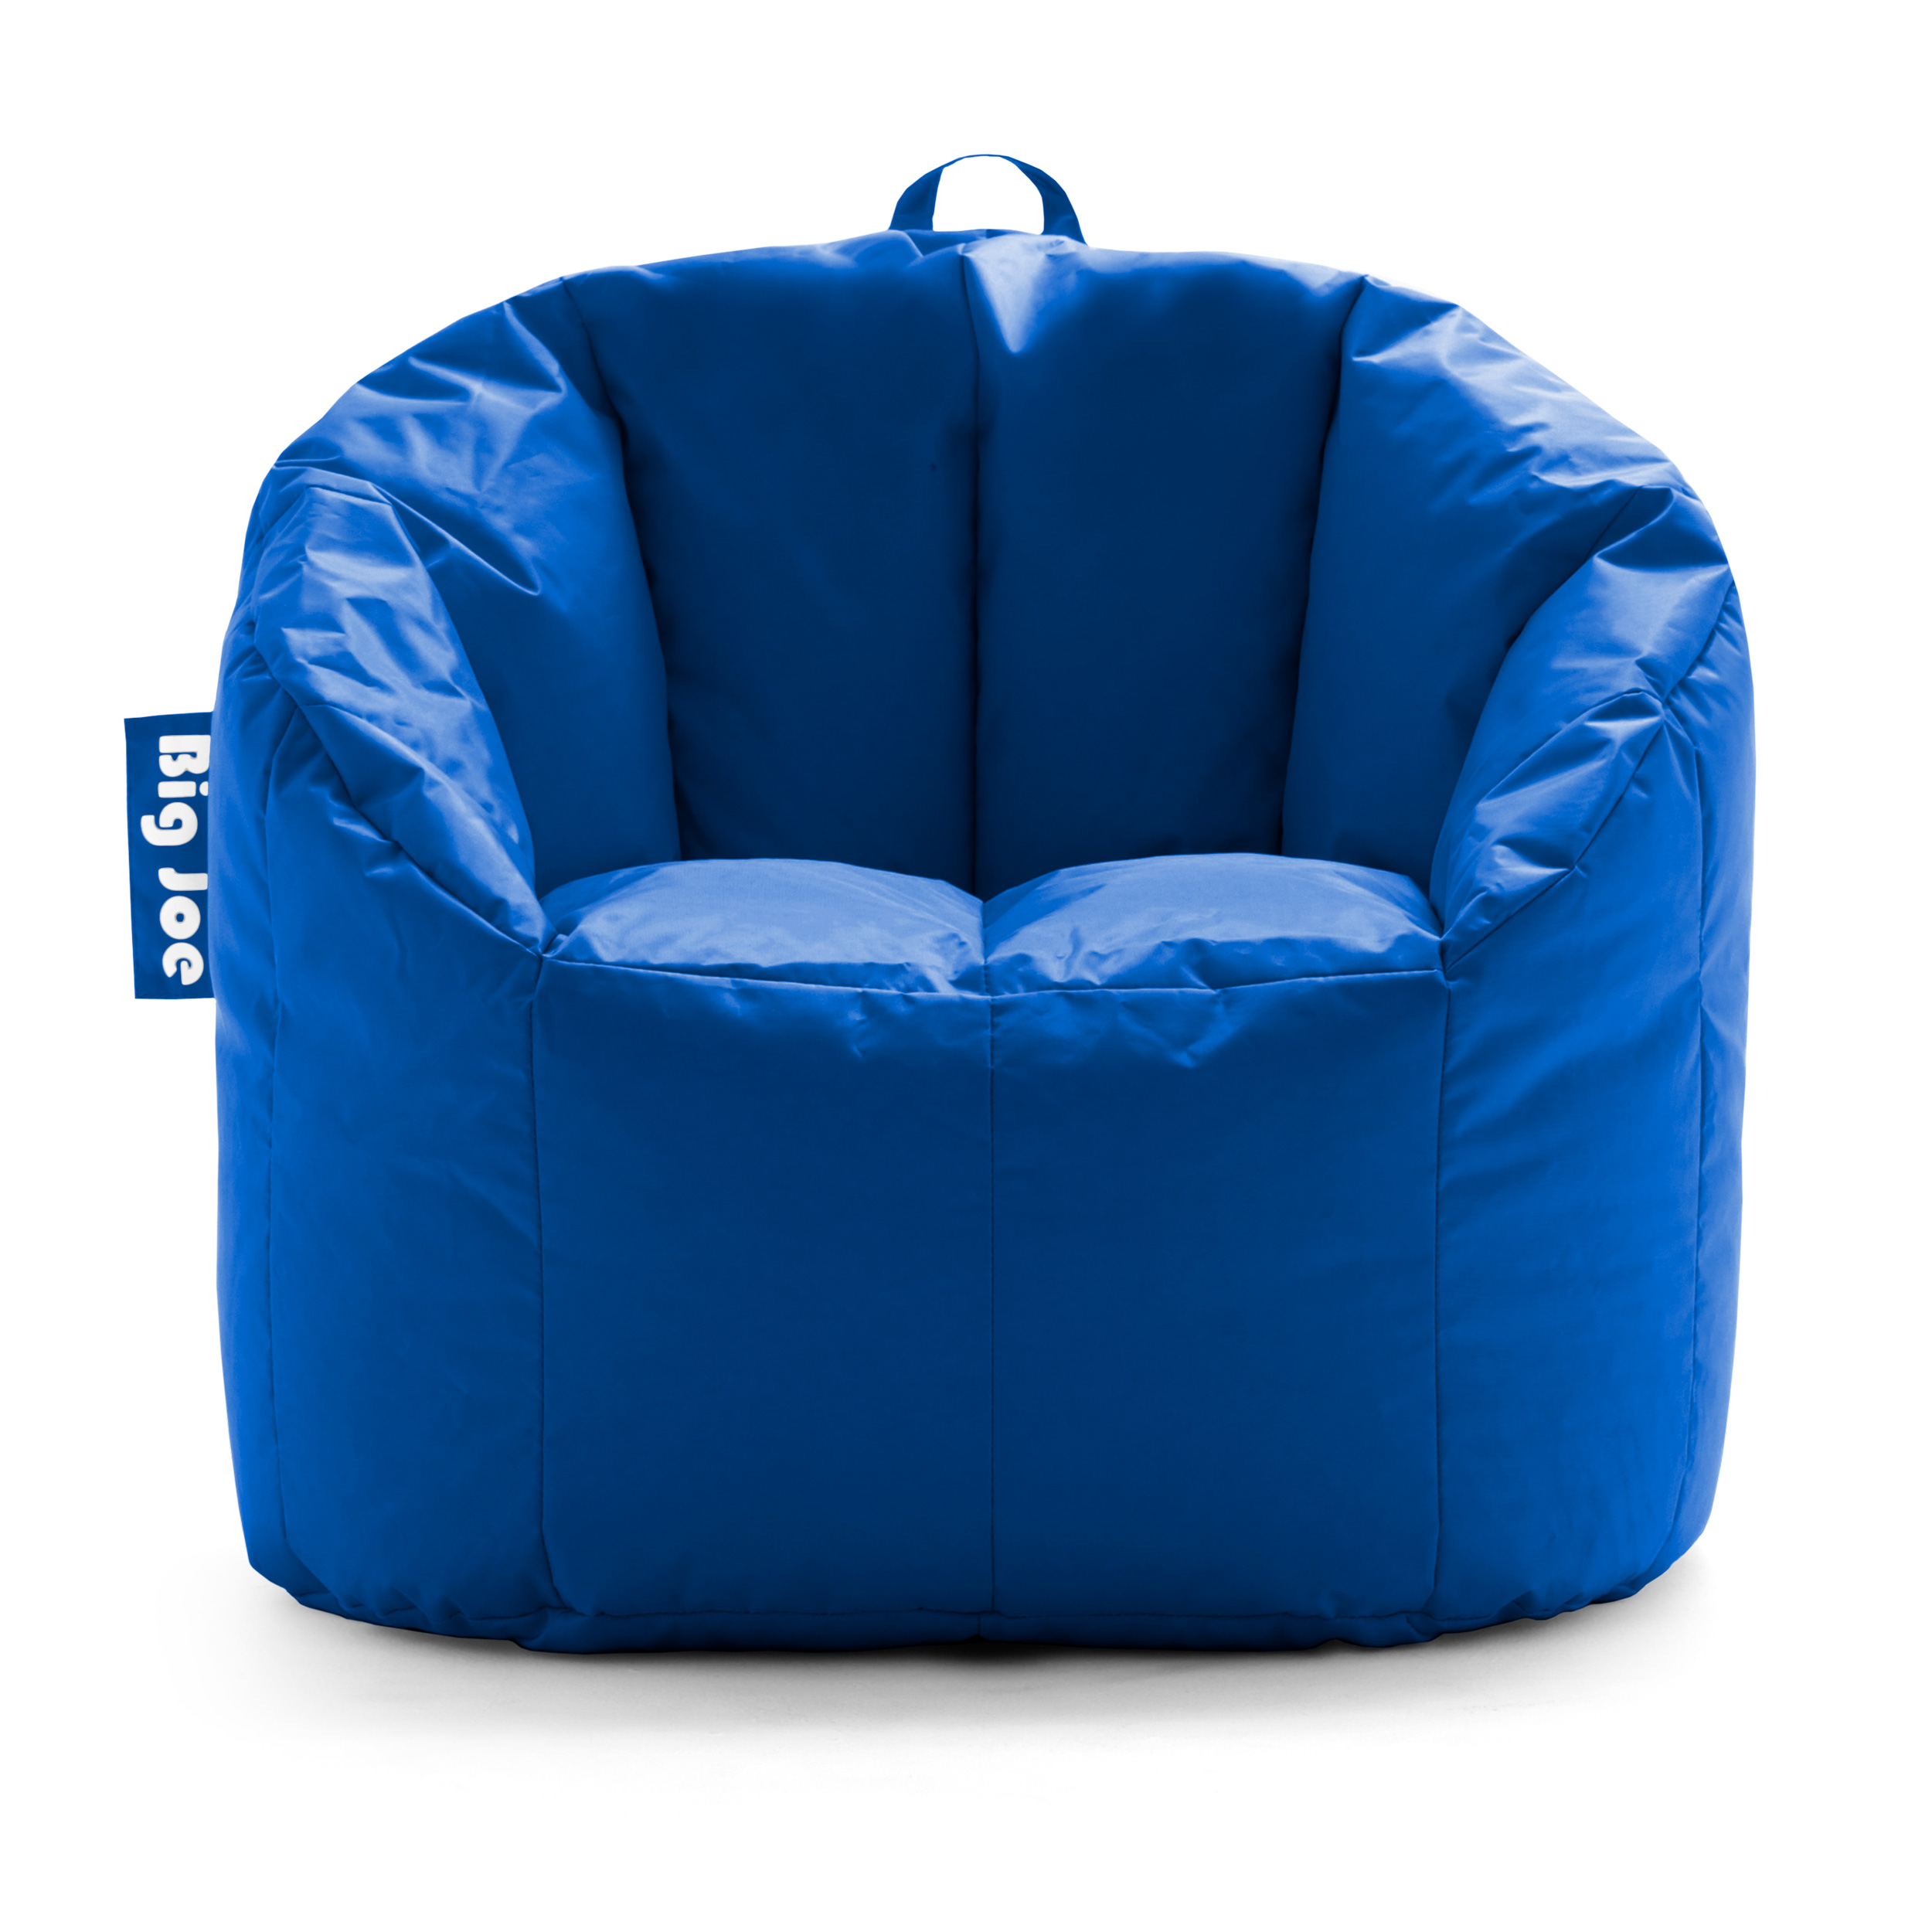 Merveilleux Bean Bag Chair Blue 32